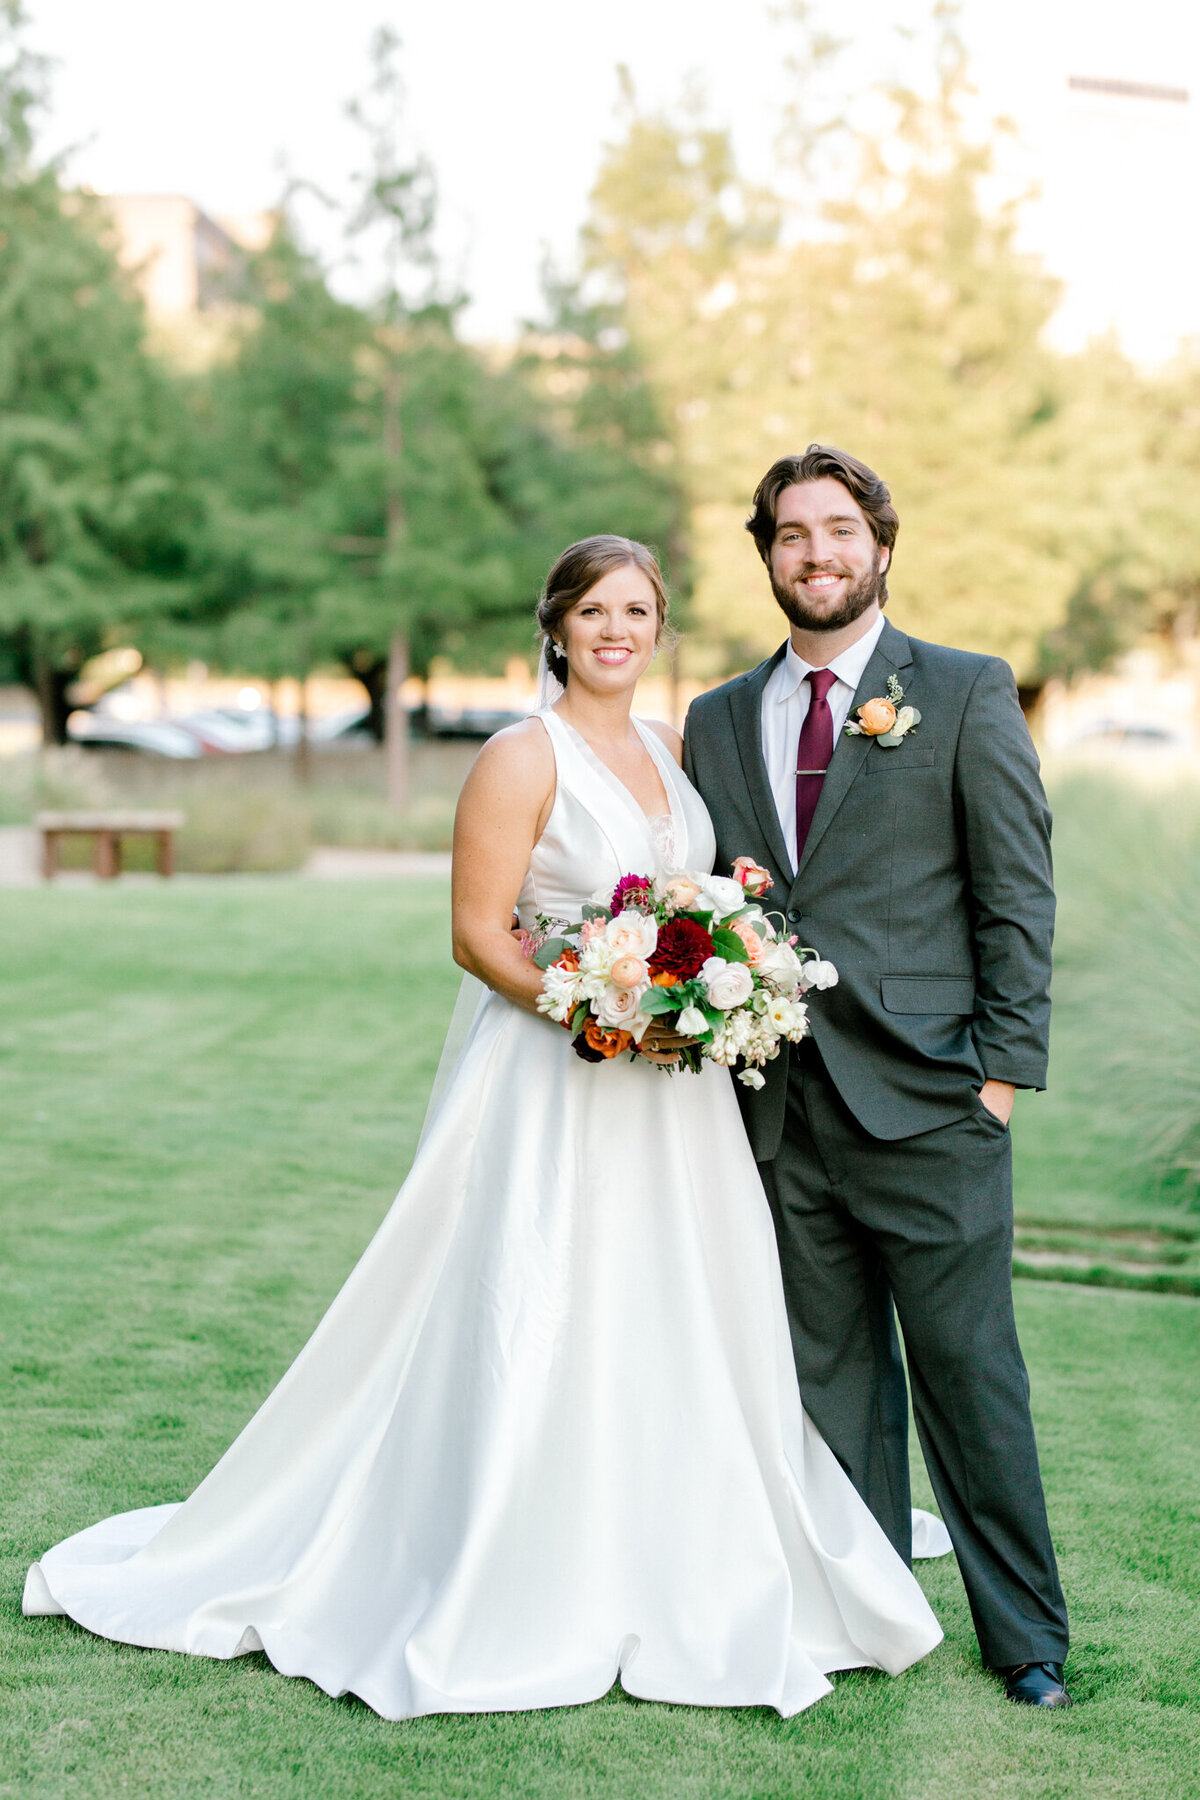 Kaylee & Michael's Wedding at Watermark Community Church | Dallas Wedding Photographer | Sami Kathryn Photography-118